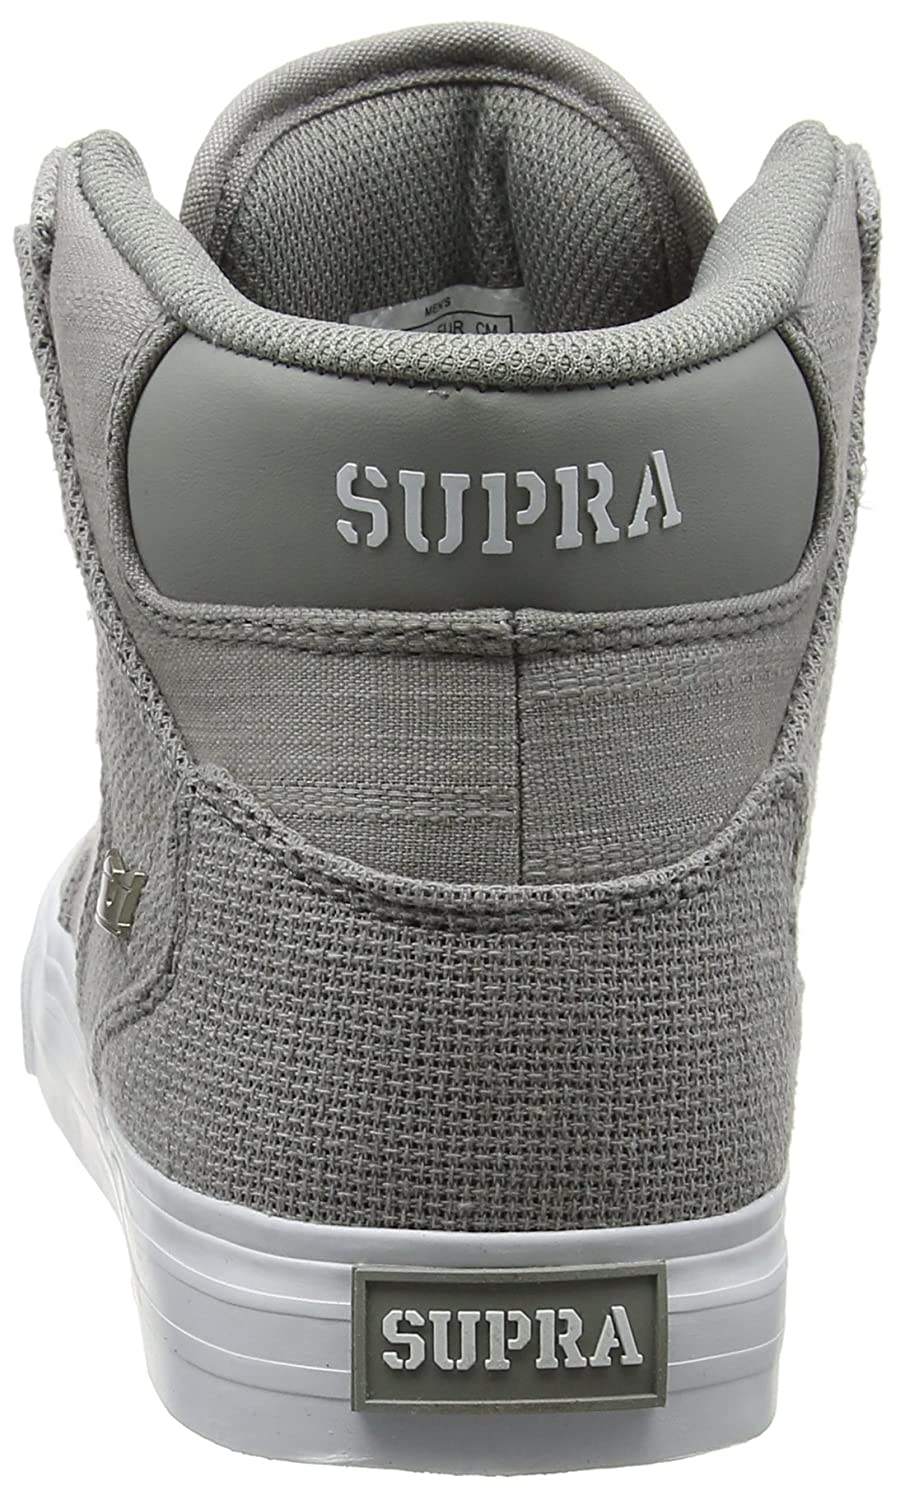 Supra Vaider Skate 10.5 Shoe B01N32ZIIS Medium / 10.5 Skate C/D US Women / 9 D(M) US Men|Grey - White / Grey b3a812